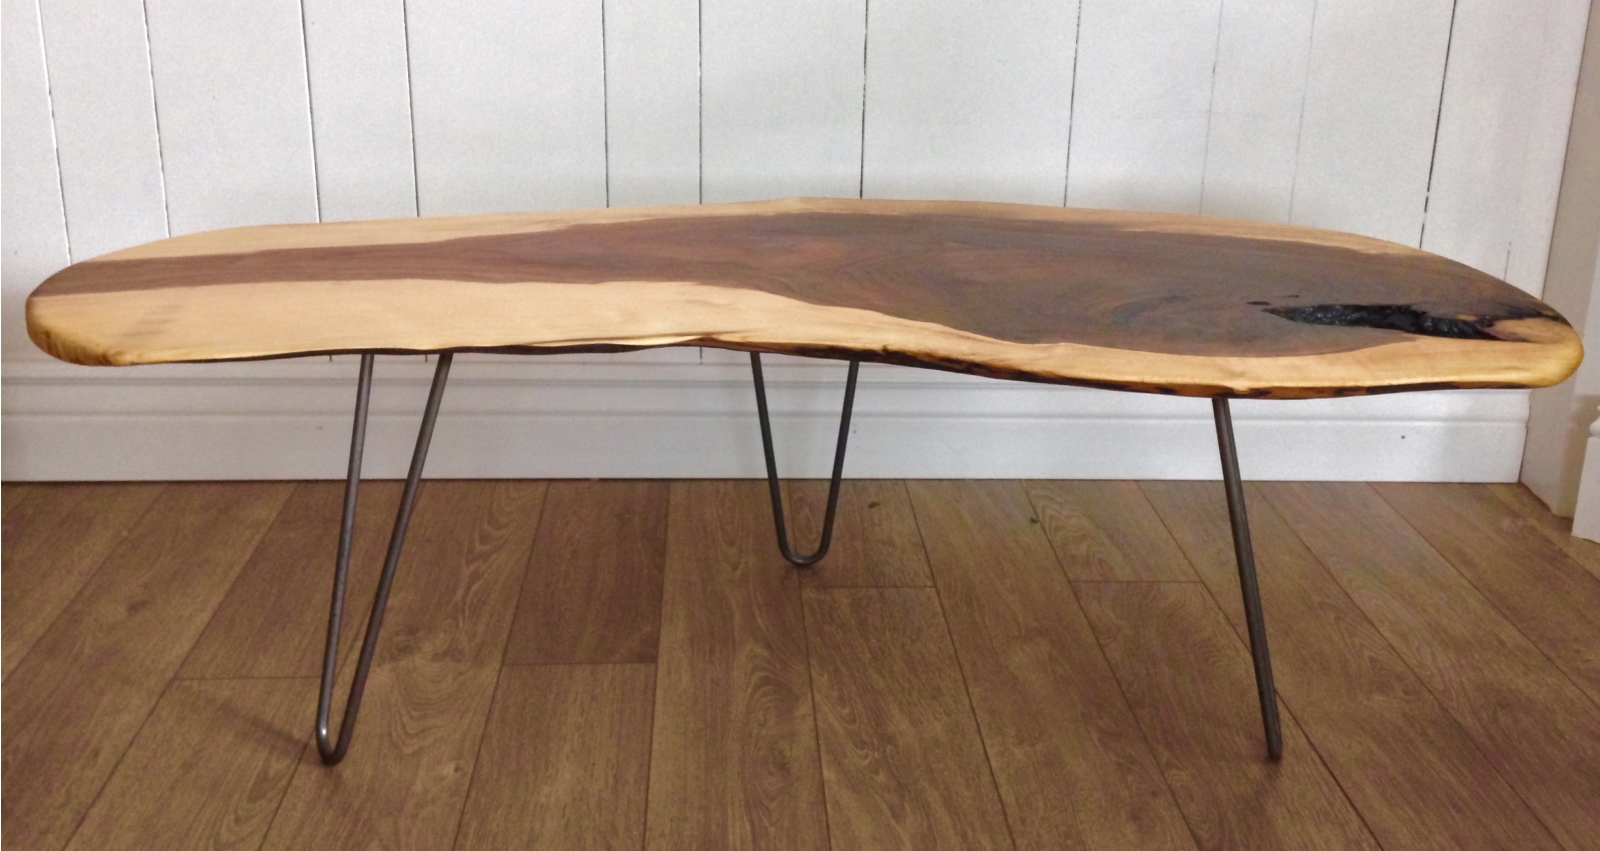 Craft Your Own Artisanal Wood Table – Connie Yang – Medium With Regard To Favorite Artisanal Dining Tables (View 4 of 25)